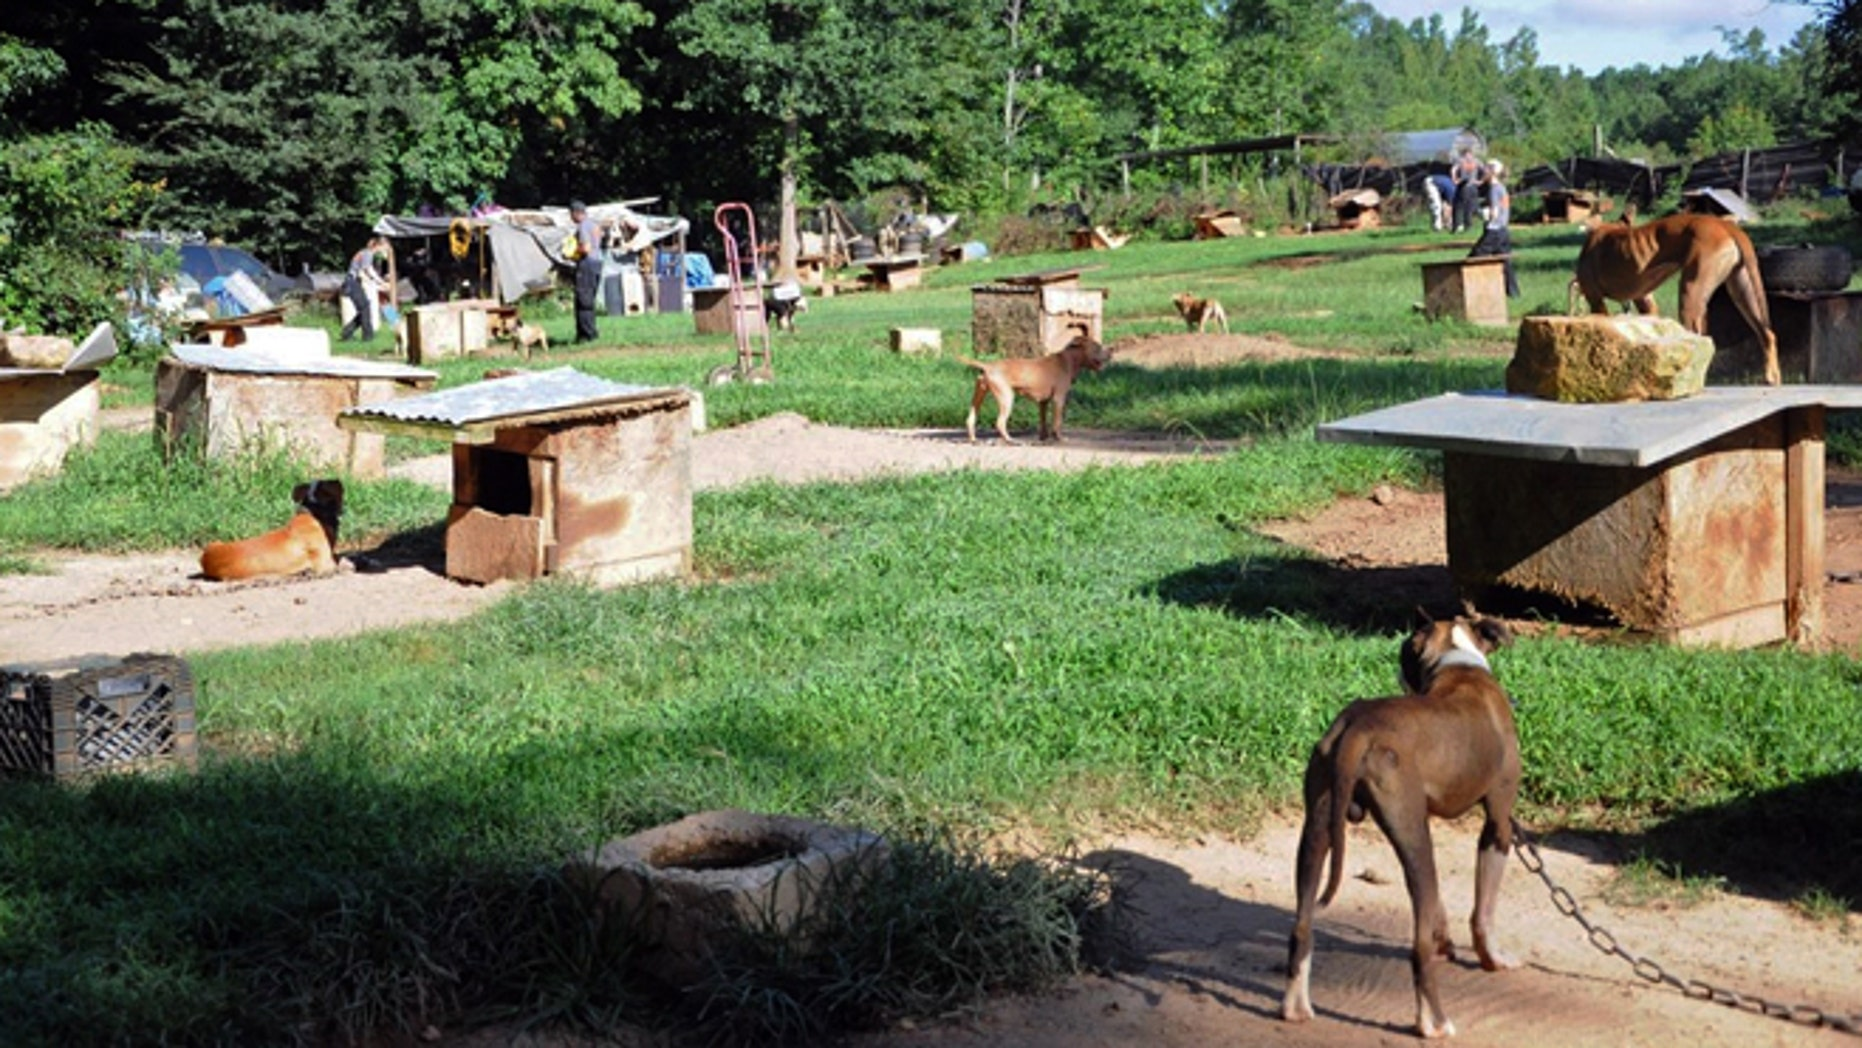 Authorities arrest 12, seize 367 pit bulls in multi-state